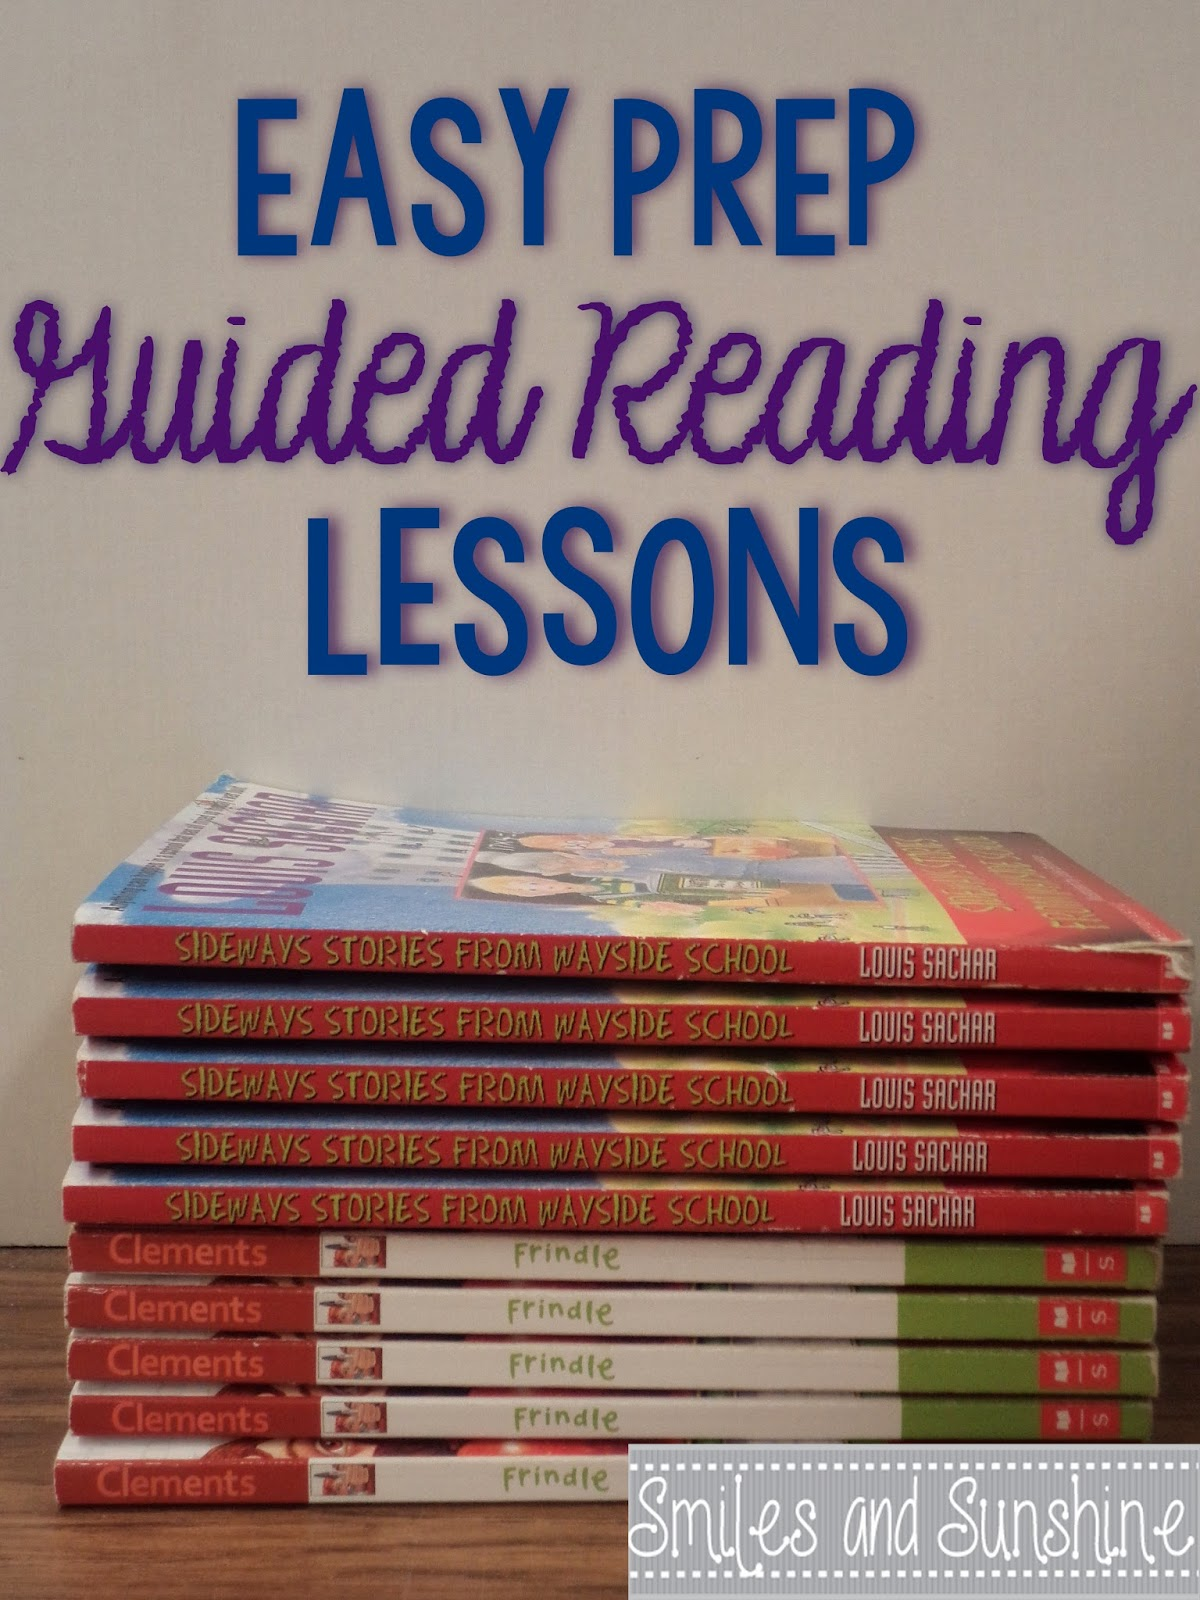 http://kaitlyn-smiles.blogspot.com/2014/11/guided-readingeasy-prep-lessons.html